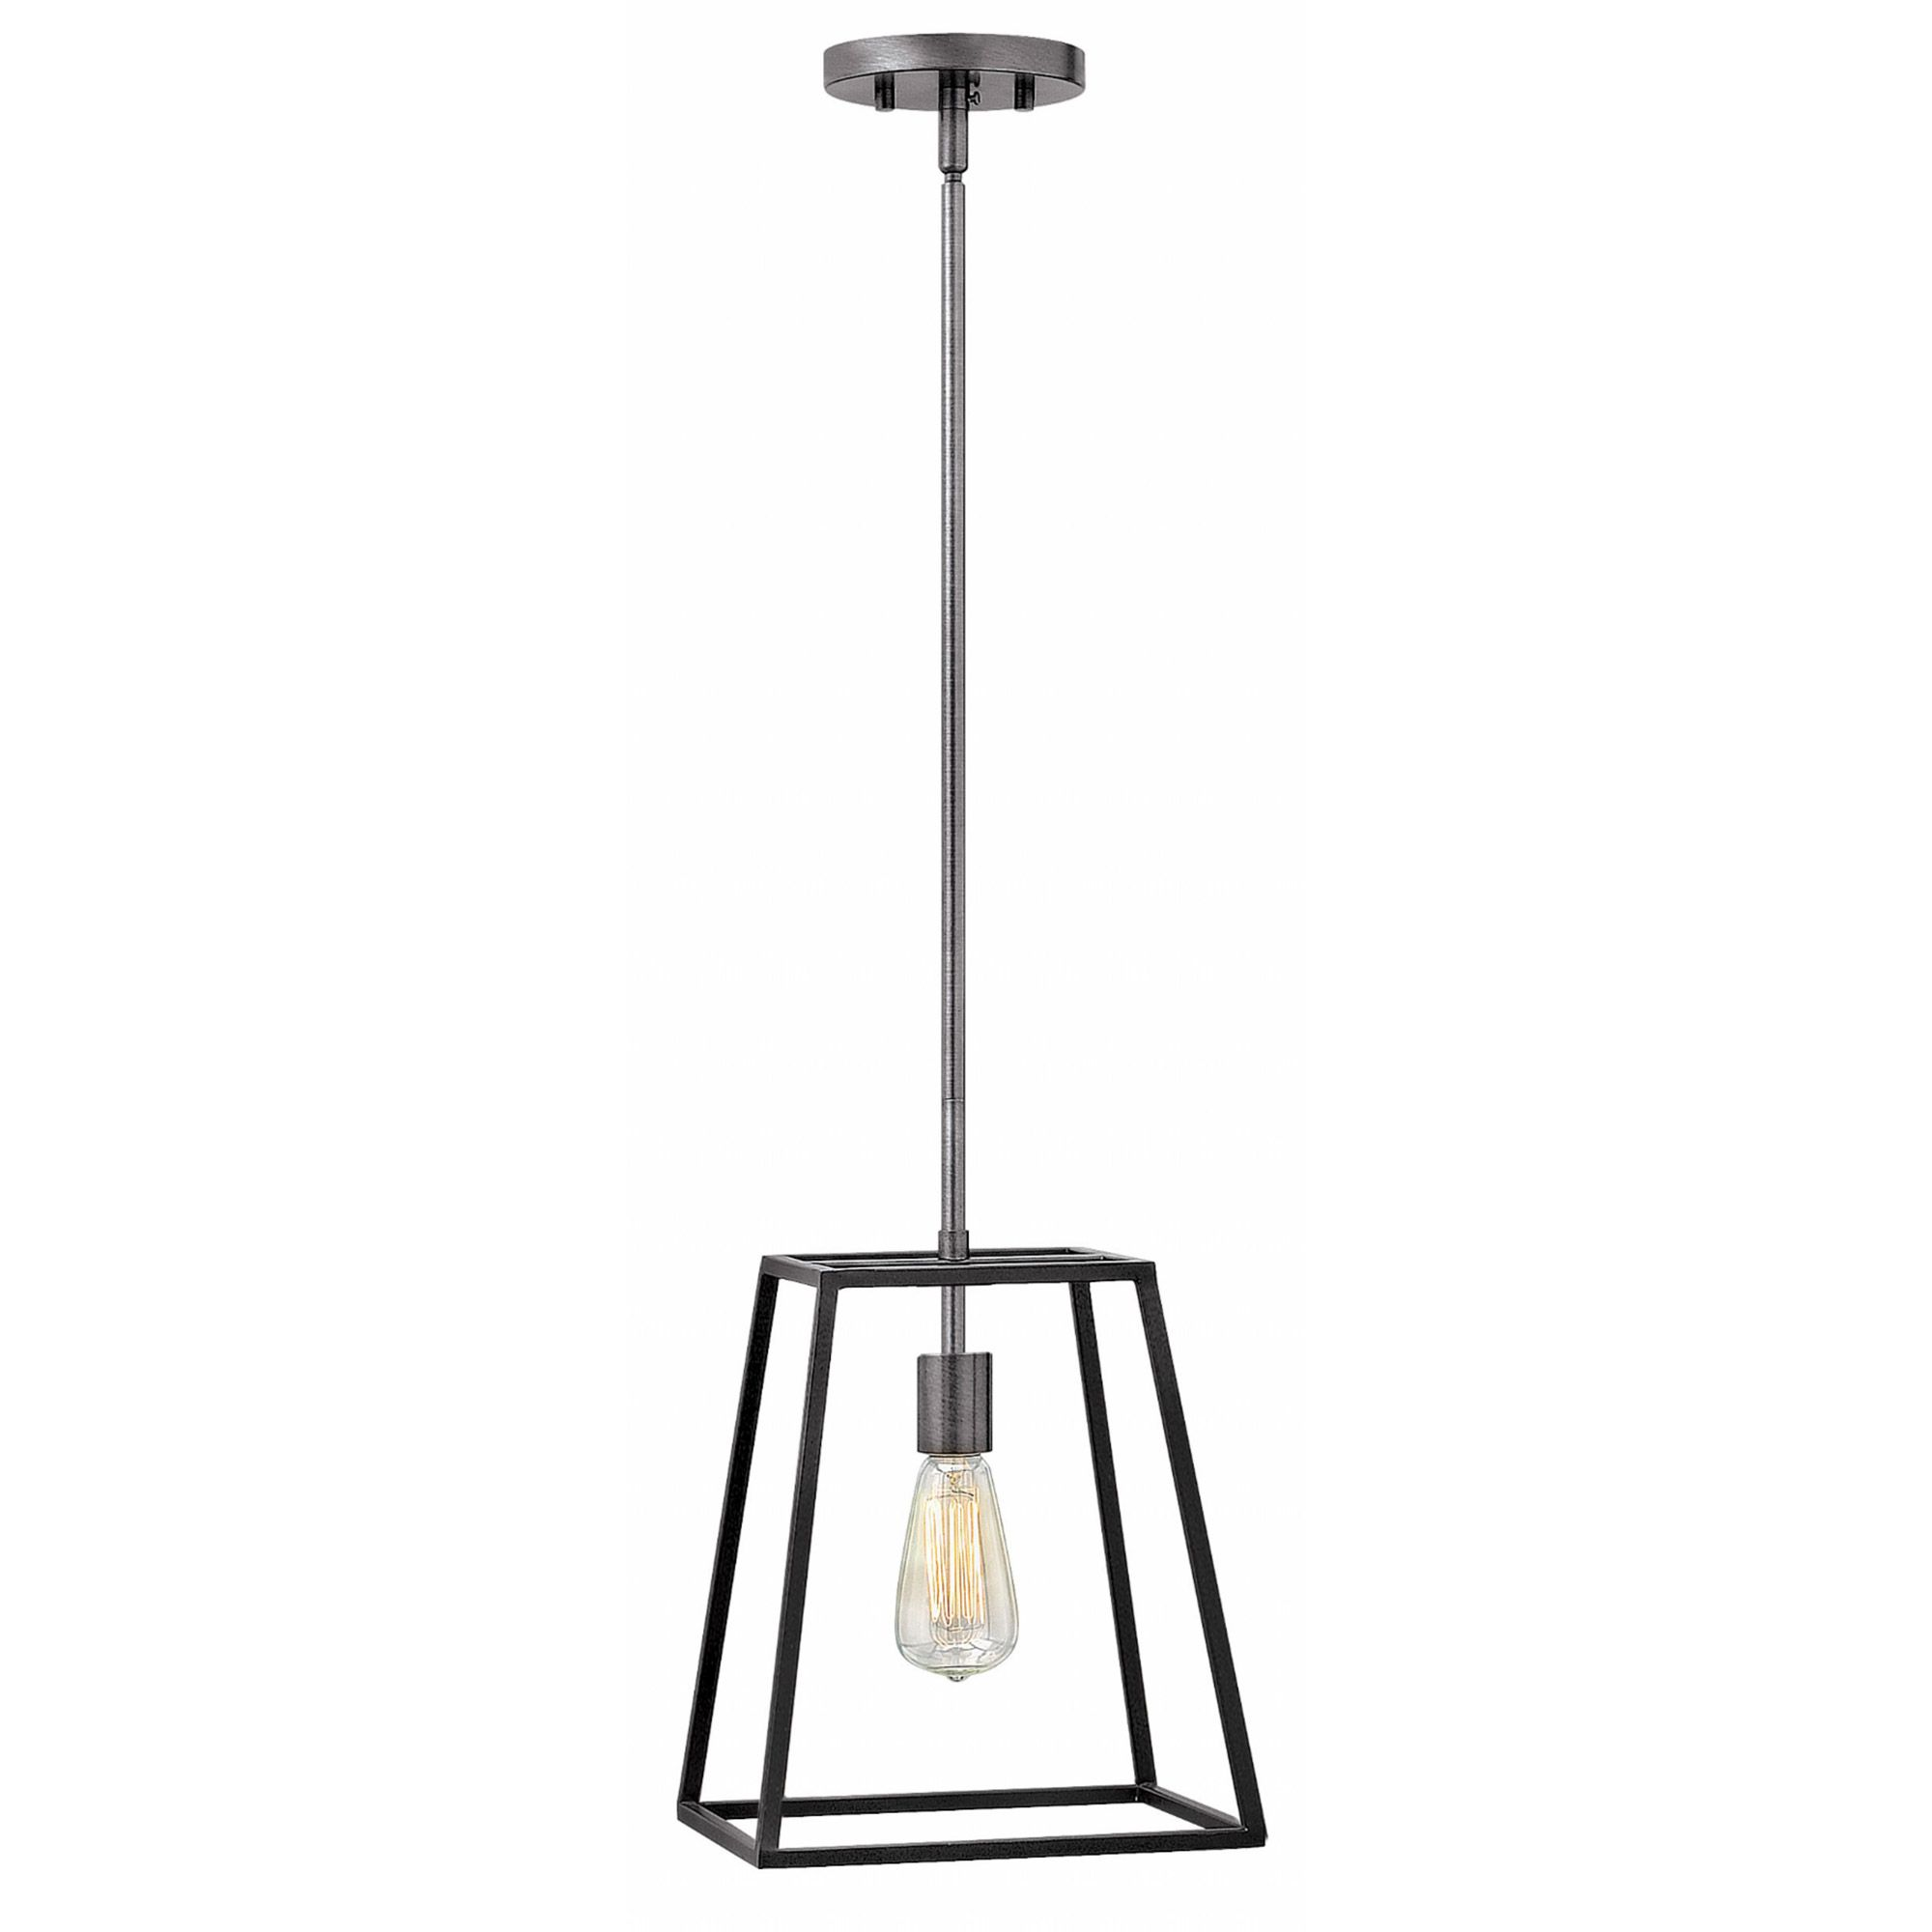 The Fulton 1 Light Pendant Features A Bronze Or Aged Zinc